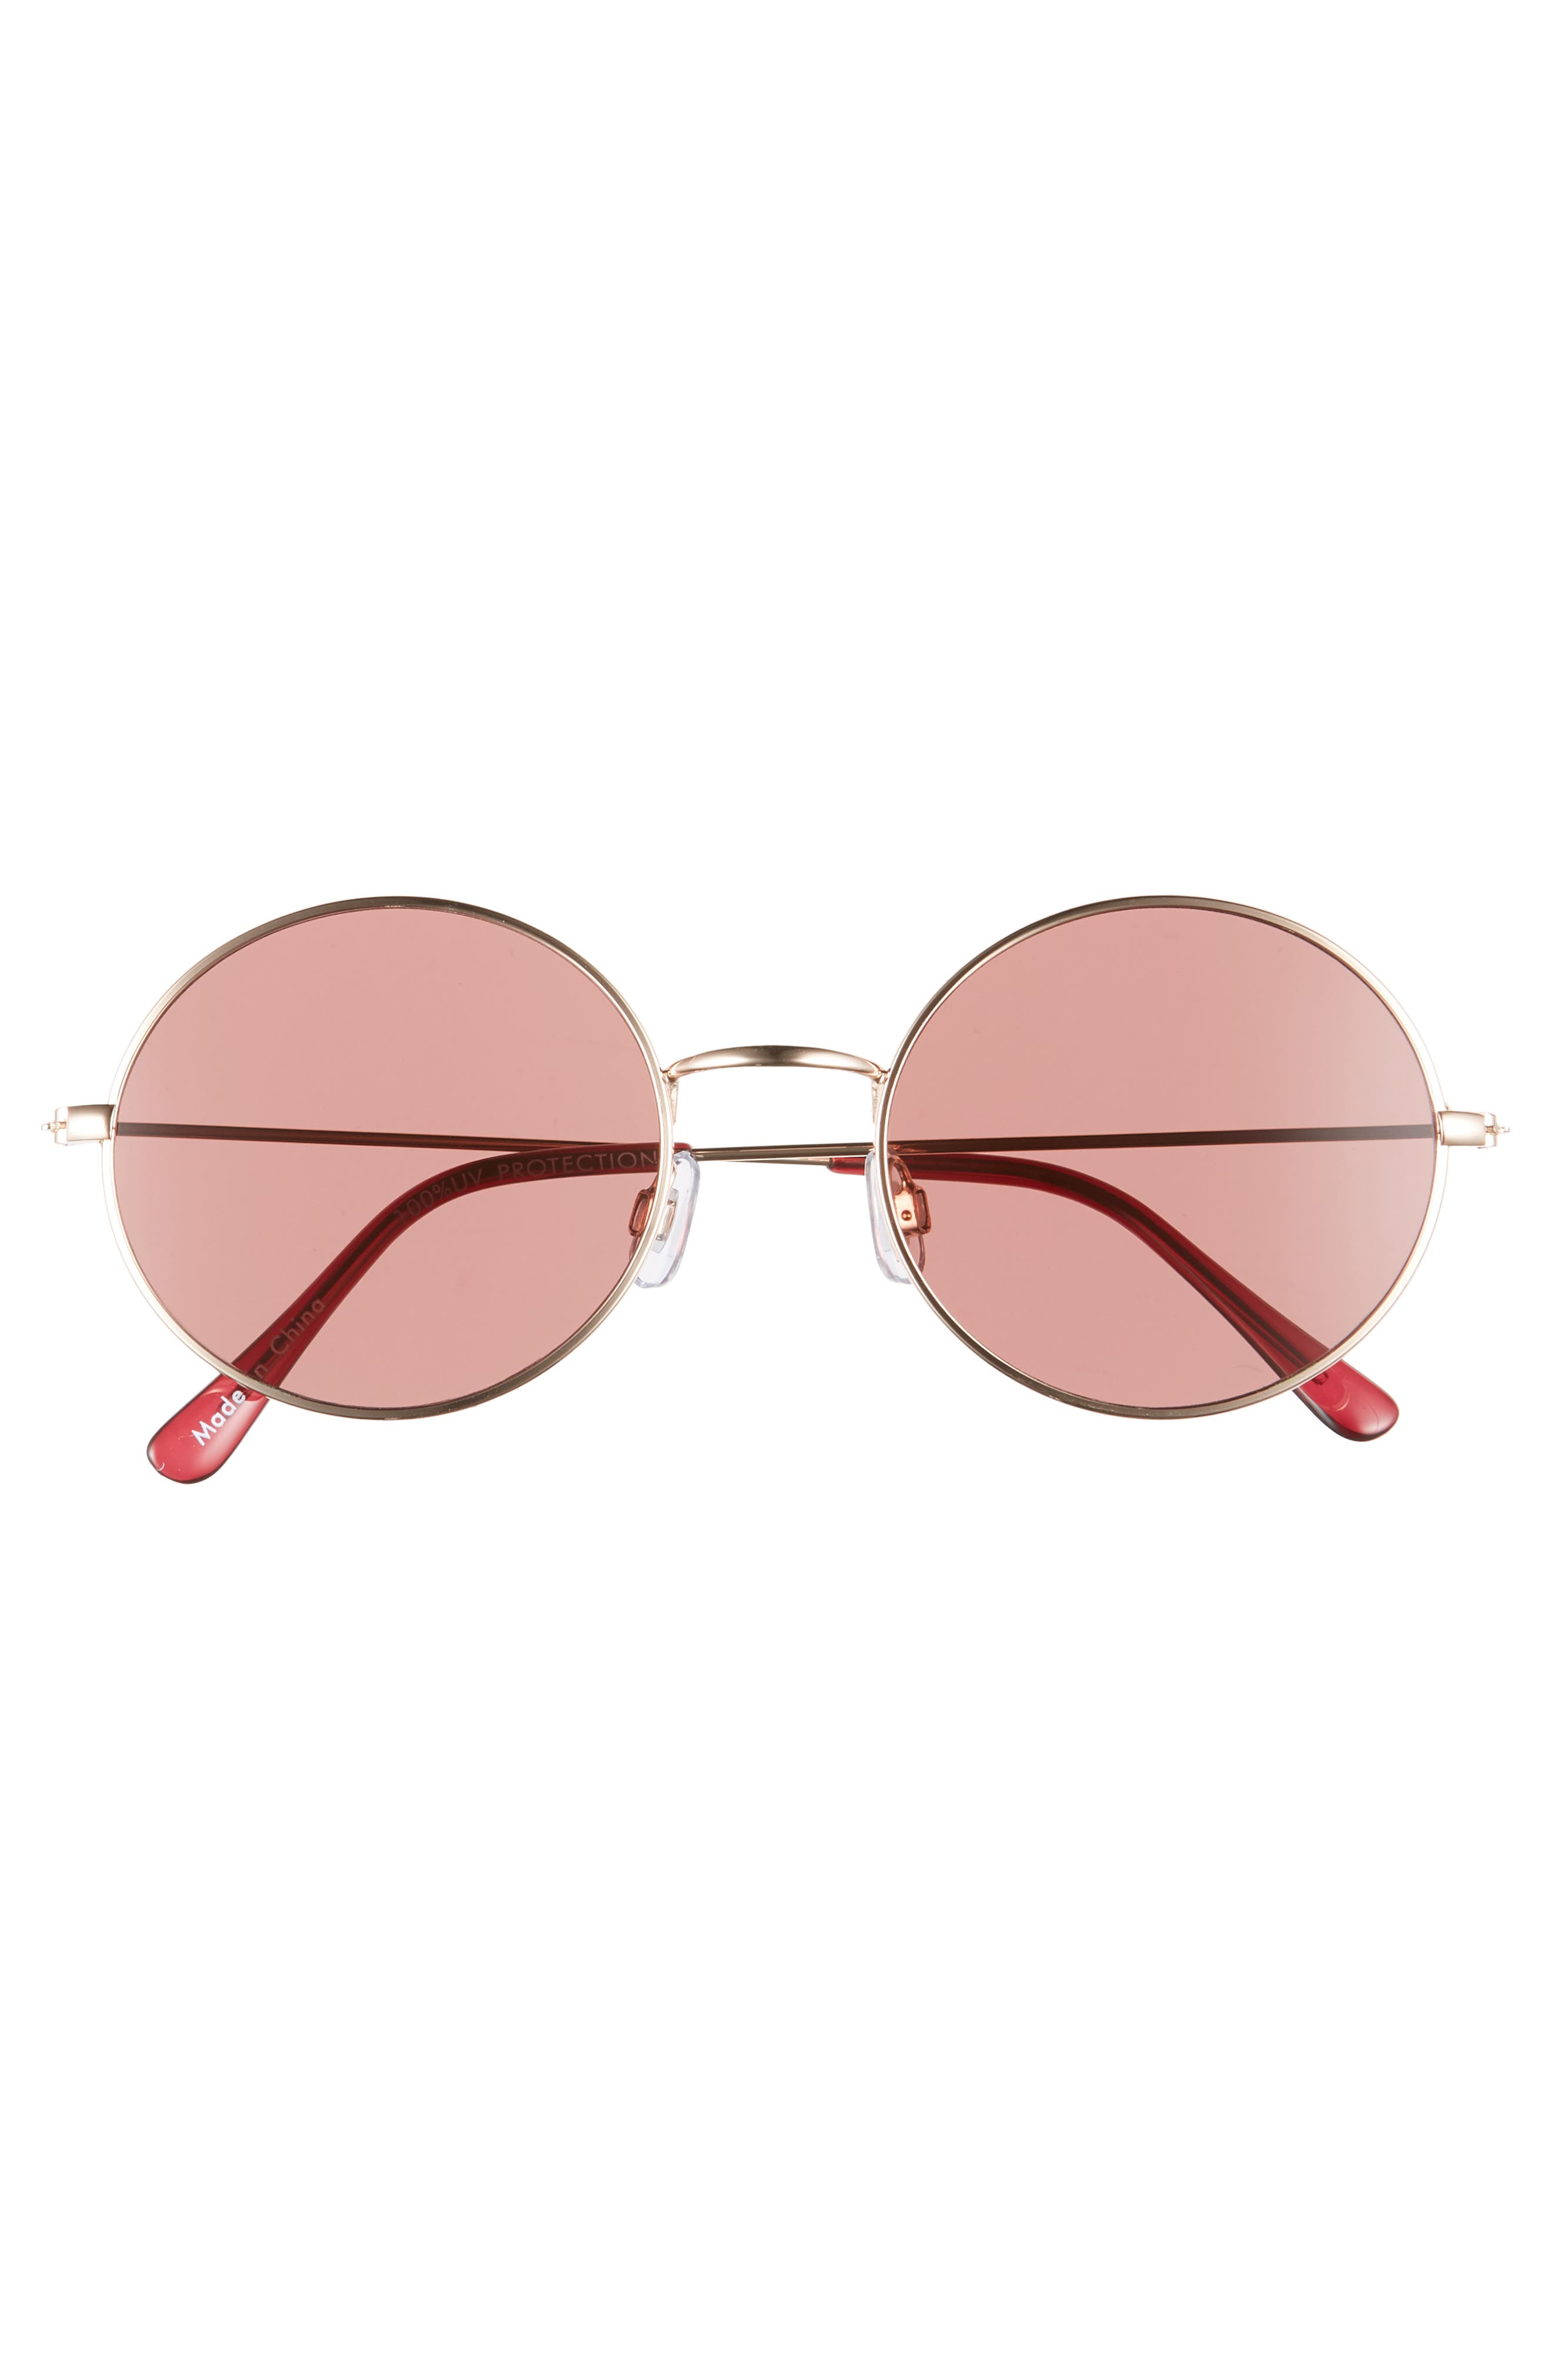 53mm Flat Round Sunglasses,                             Alternate thumbnail 3, color,                             GOLD/ BROWN